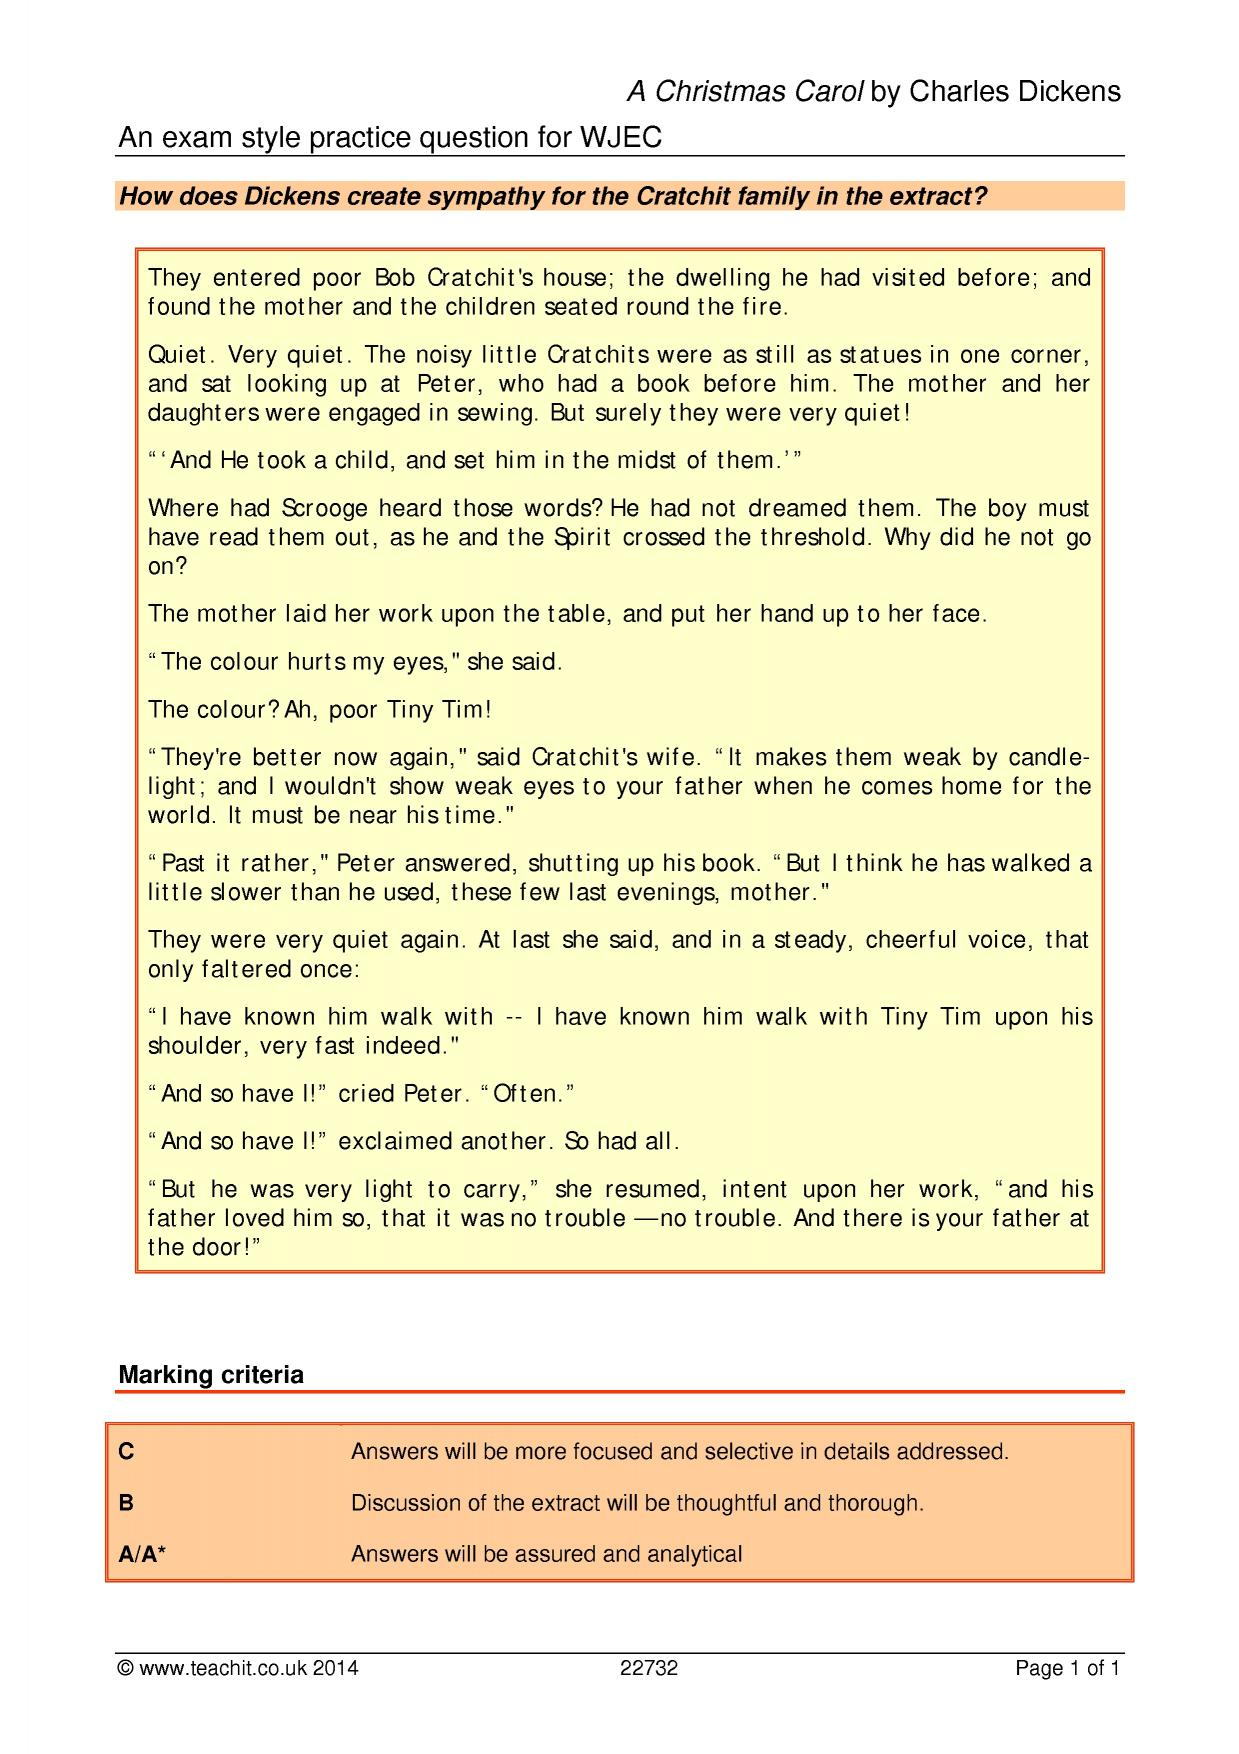 an analysis of a christmas carol by charles dickens A summary of analysis in charles dickens's a christmas carol learn exactly what happened in this chapter, scene, or section of a christmas carol and what it means perfect for acing essays, tests, and quizzes, as well as for writing lesson plans.